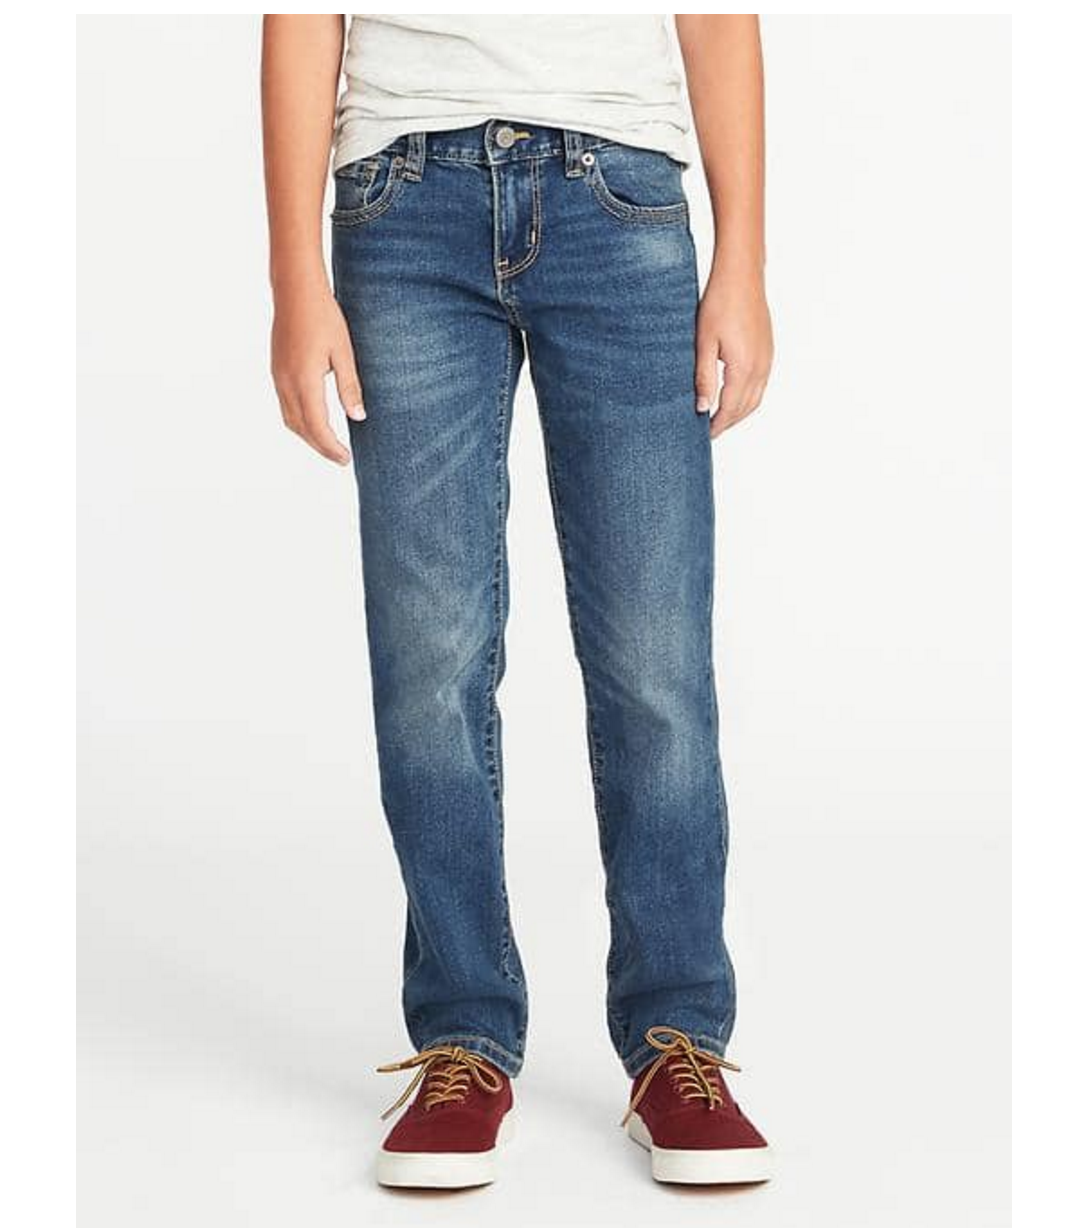 Tanger Outlets Old Navy Outlet boy's skinny jeans